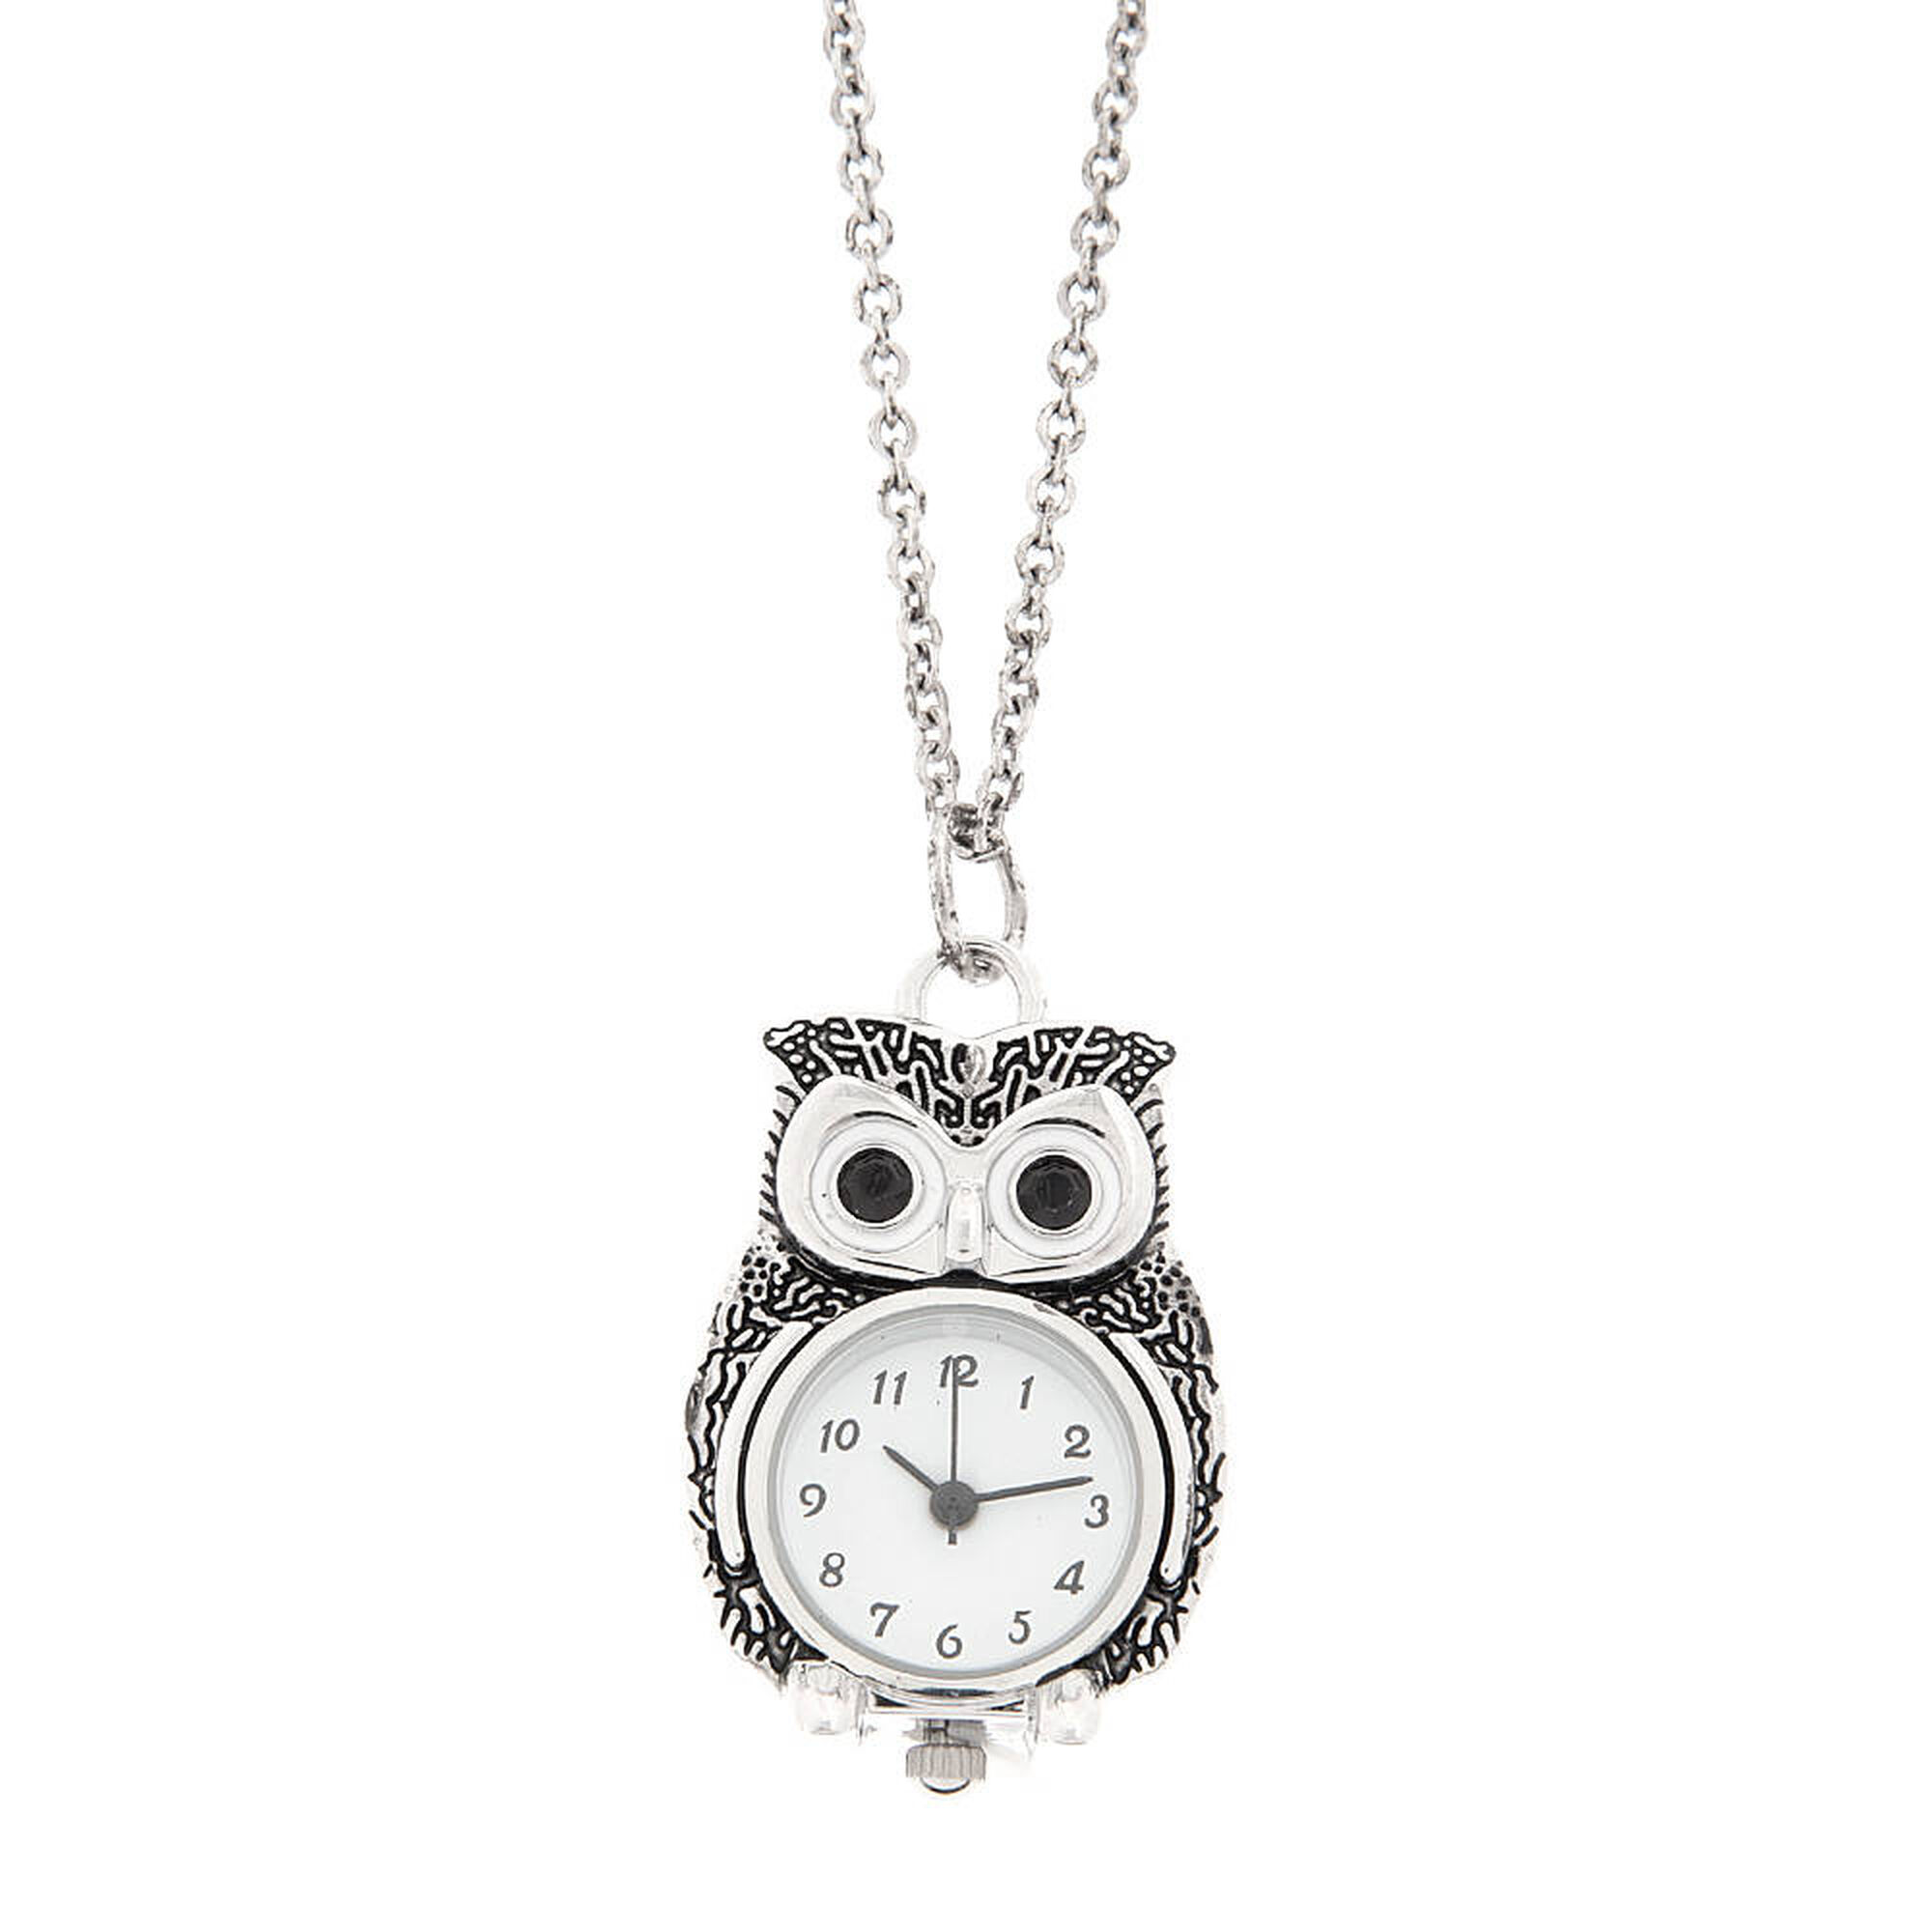 Antique silver owl pocket watch pendant necklace claires us antique silver owl pocket watch pendant necklace mozeypictures Gallery